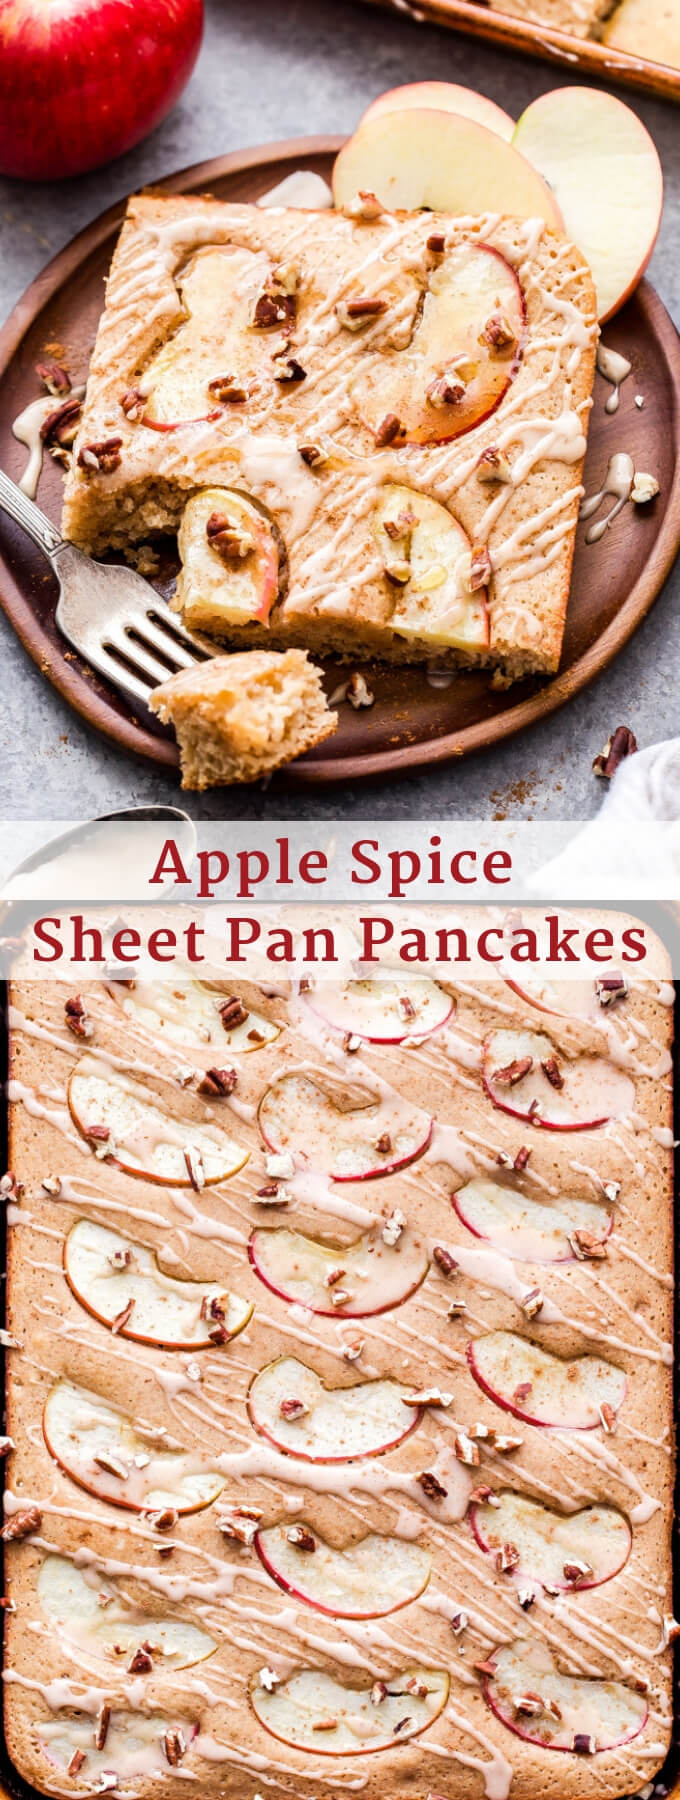 Apple Spice Sheet Pan Pancakes are perfect for fall breakfast or brunch and won't leave you standing over the griddle flipping them while everyone else eats! #pancakes #sheetpan #breakfast #brunch #apple #applespice #thanksgiving